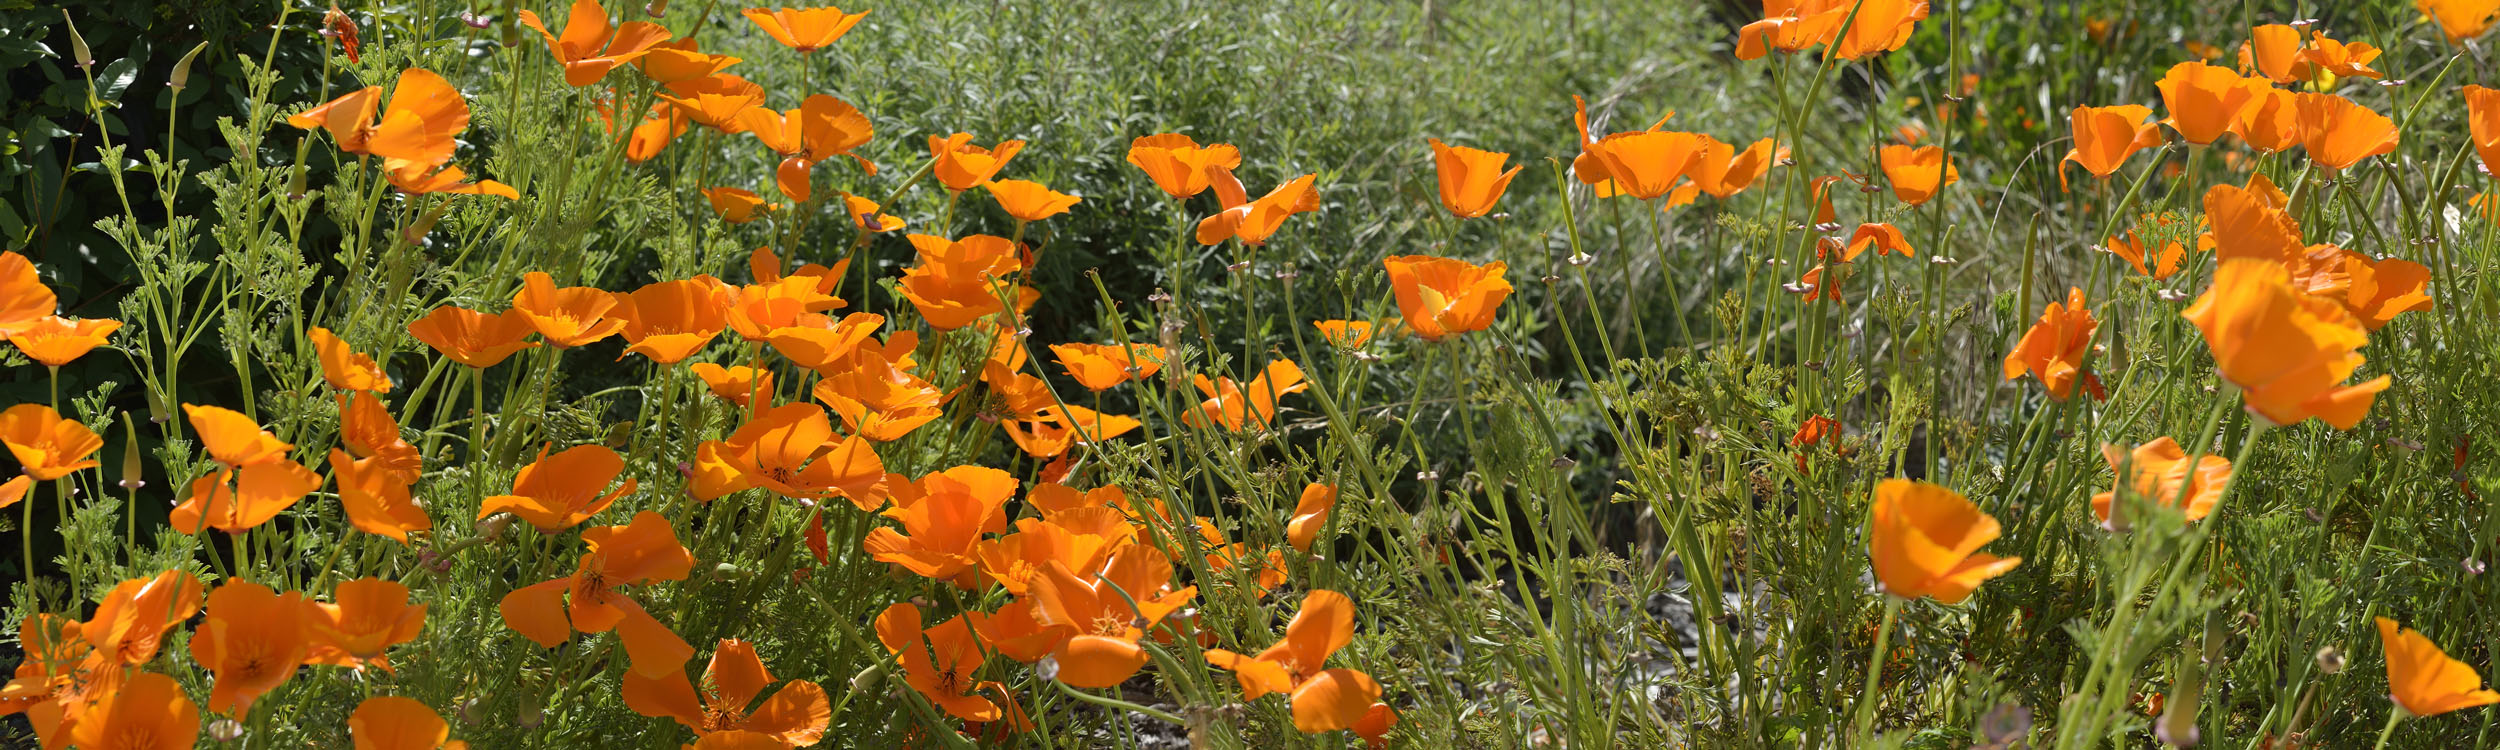 Poppies in Field, CA